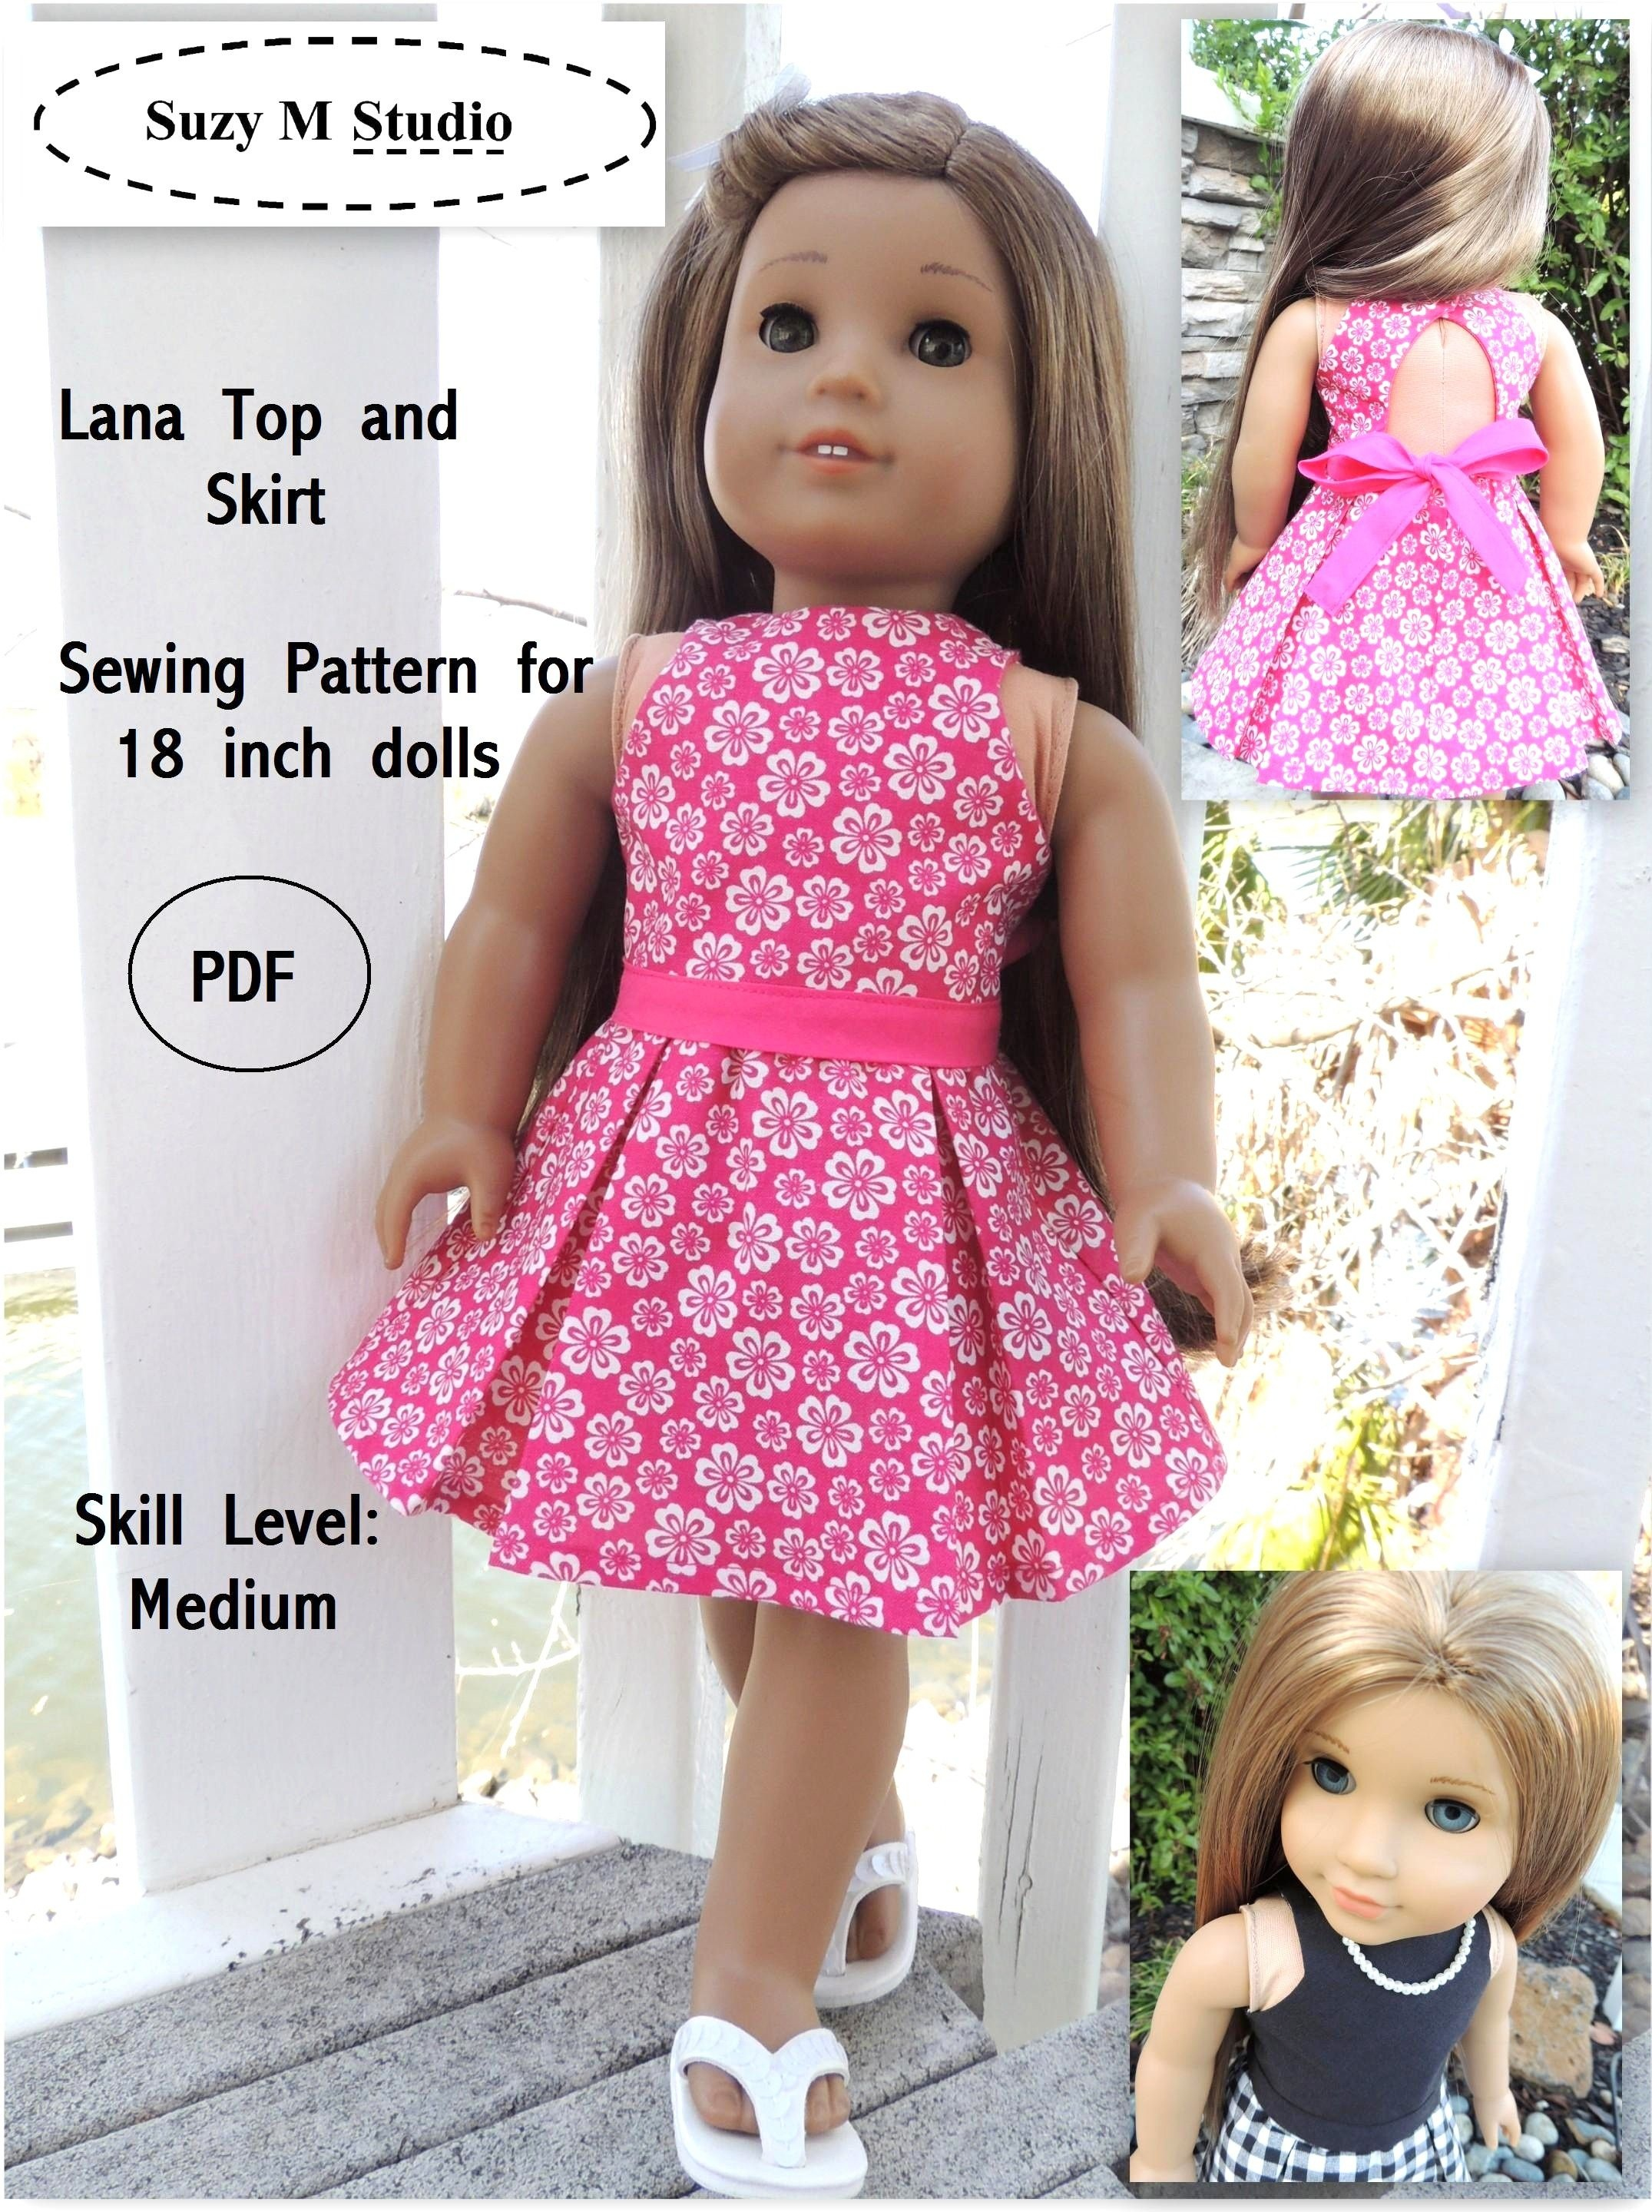 Free Tutorial Pdf | Suzymstudio … | Doll Clothes | Girl … - Free Printable Crochet Doll Clothes Patterns For 18 Inch Dolls